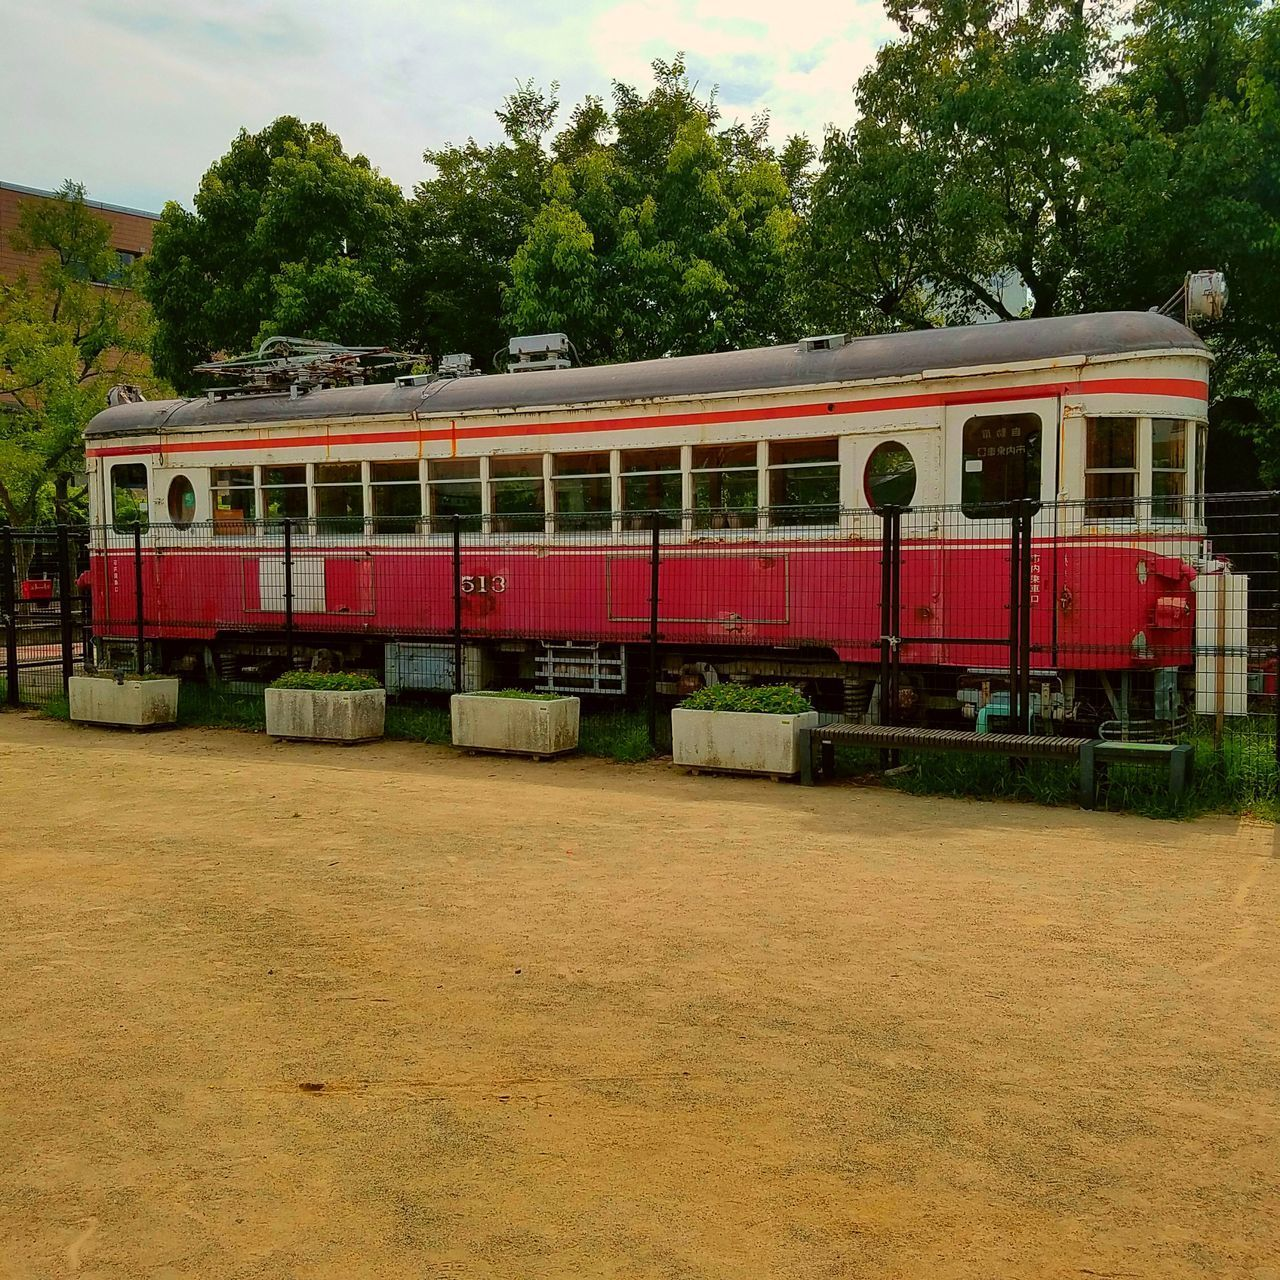 tree, transportation, public transportation, train - vehicle, red, mode of transport, rail transportation, no people, day, land vehicle, sky, growth, outdoors, nature, grass